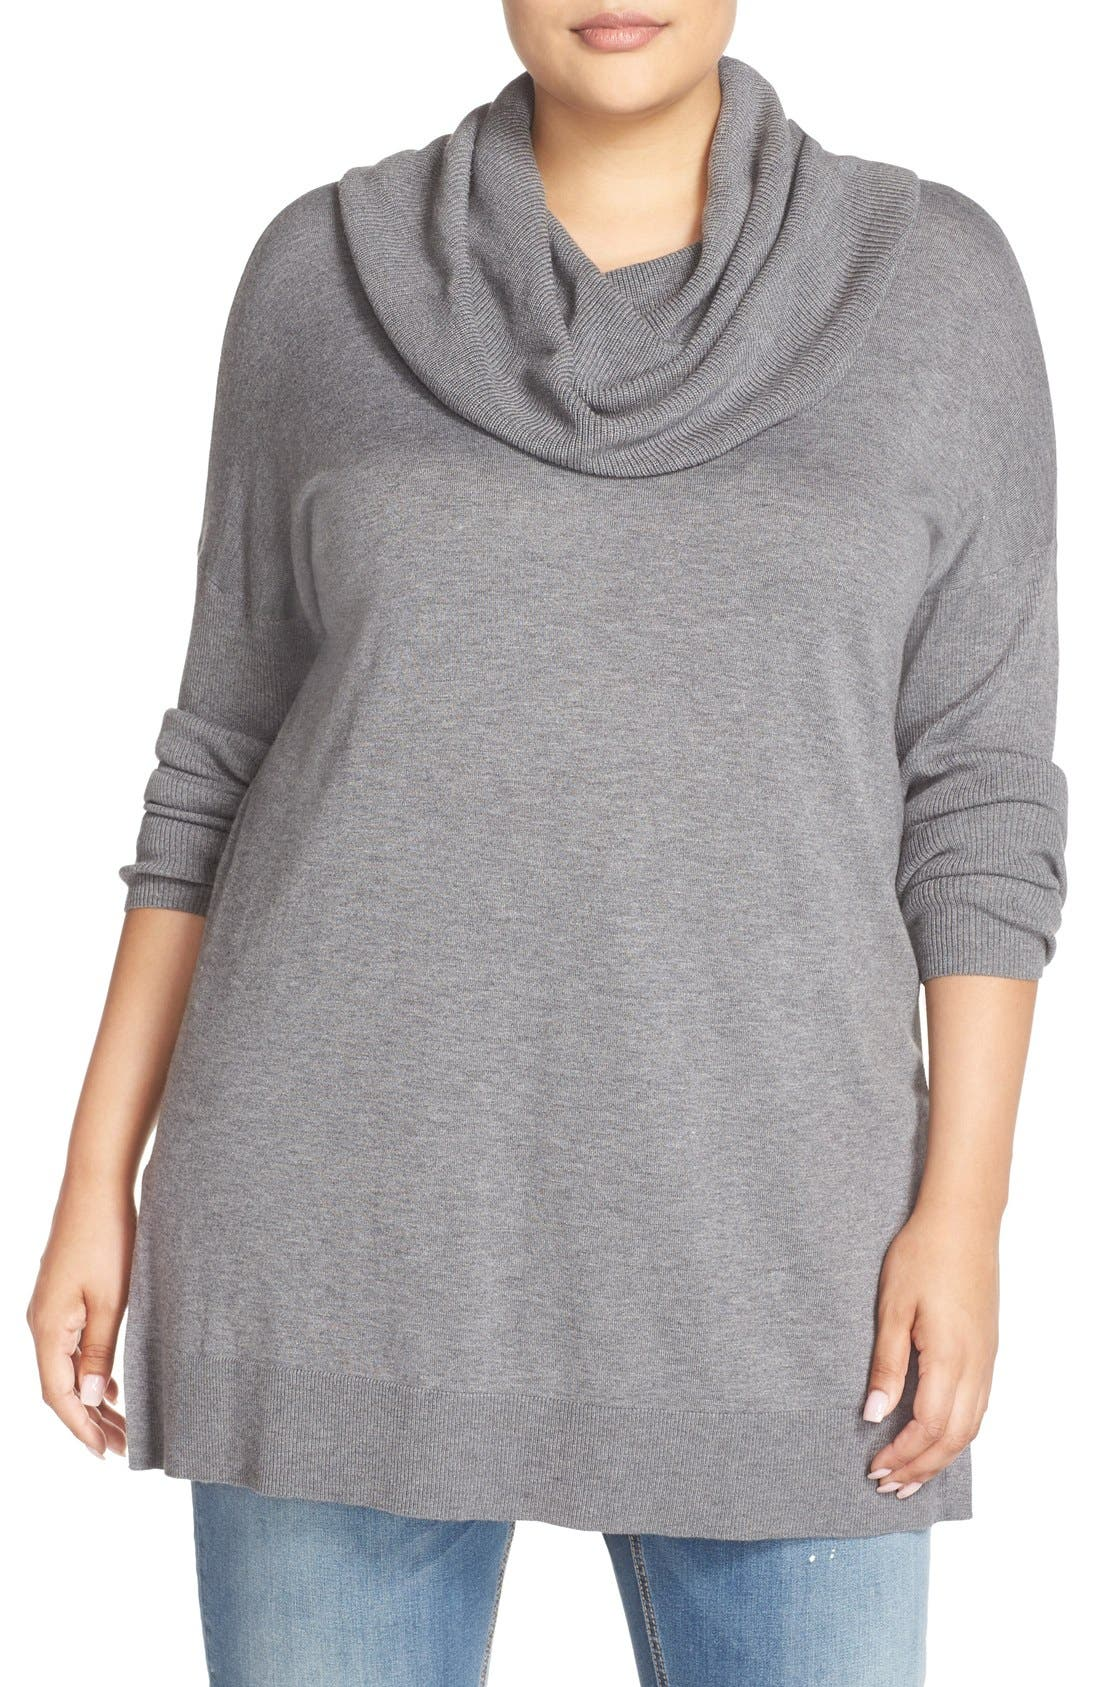 Cowl Neck Tunic Sweater,                             Main thumbnail 3, color,